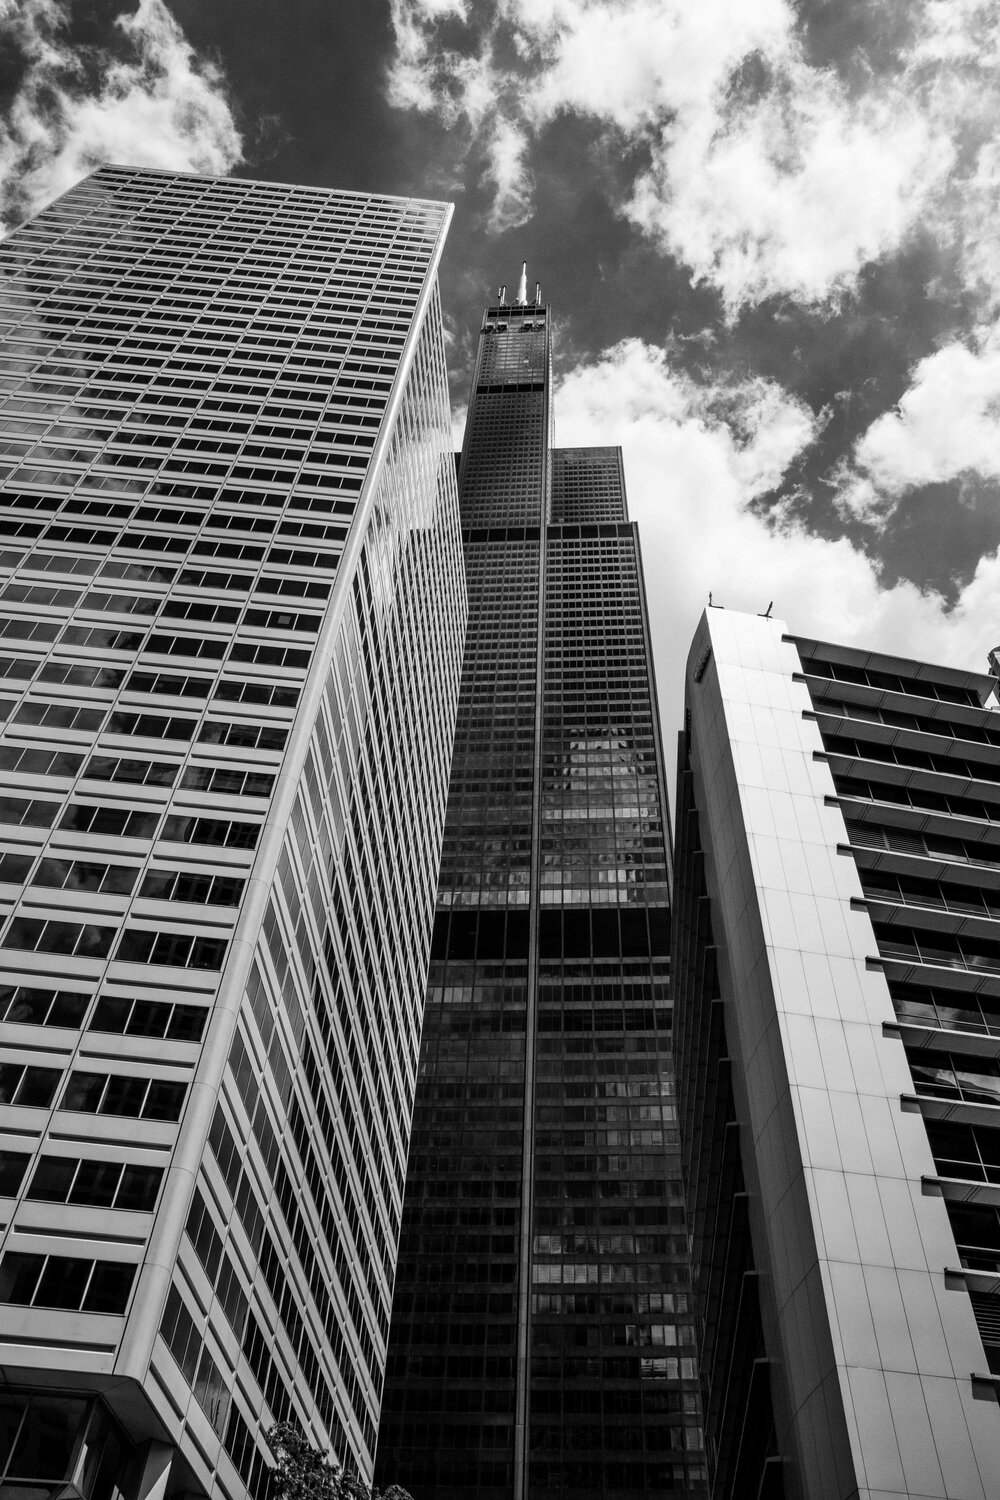 WillisTower.jpg